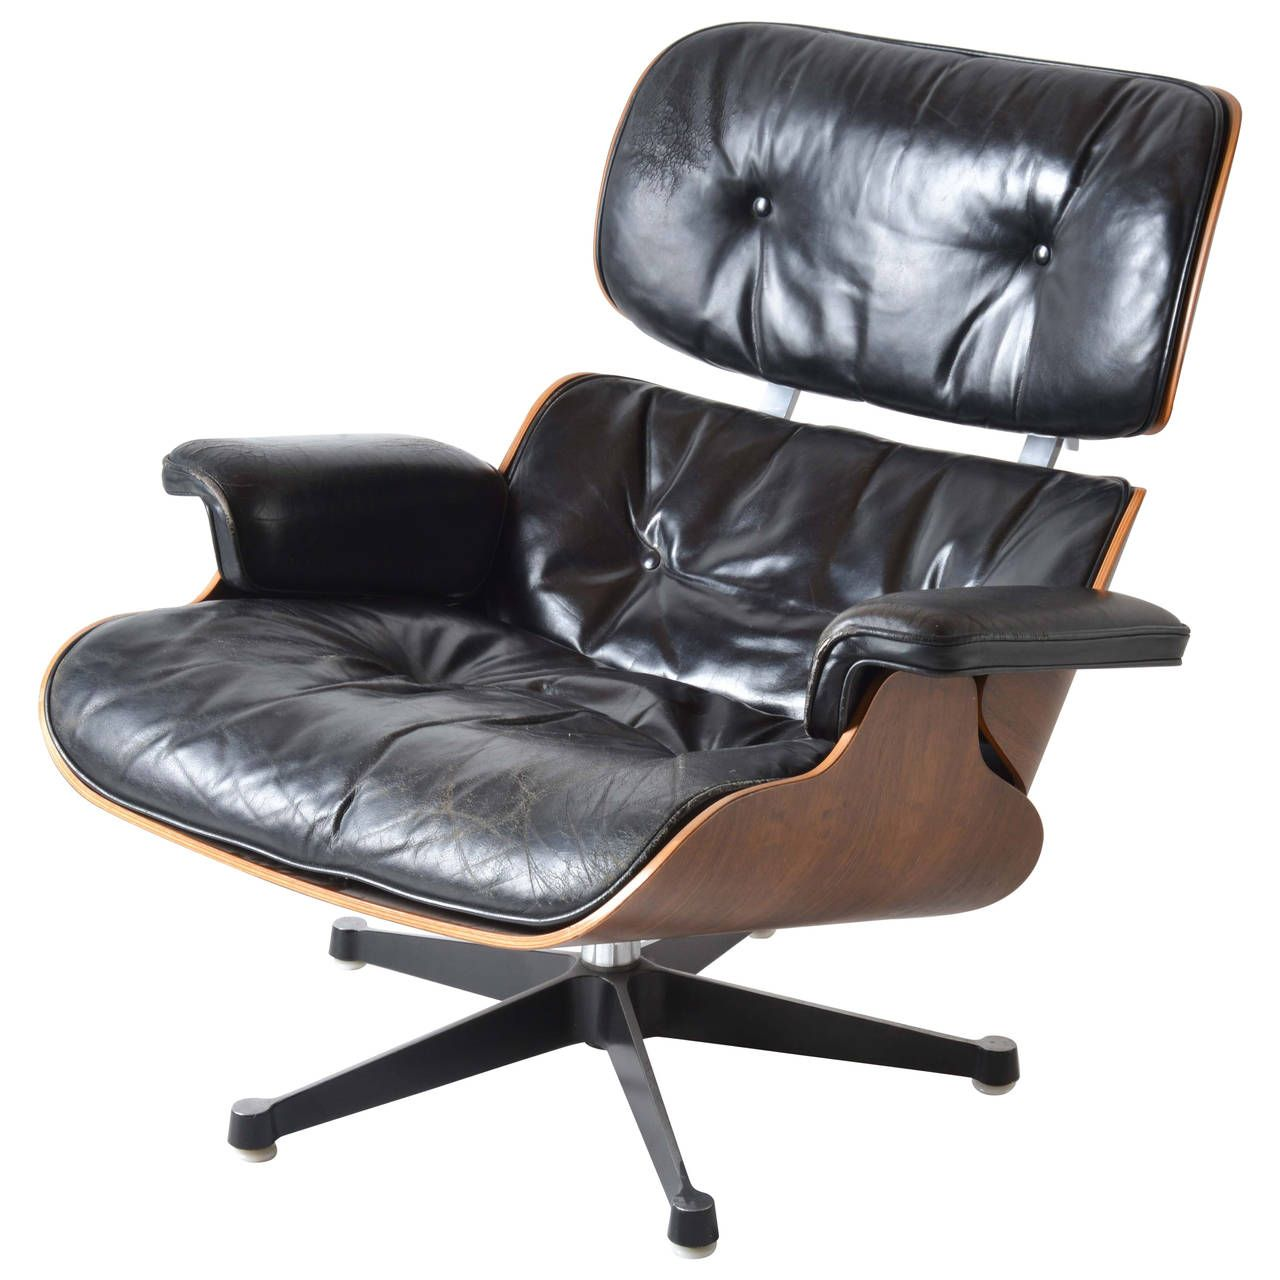 Awe Inspiring Iconic Eames Lounge Chair For Herman Miller Eames Eames Beatyapartments Chair Design Images Beatyapartmentscom